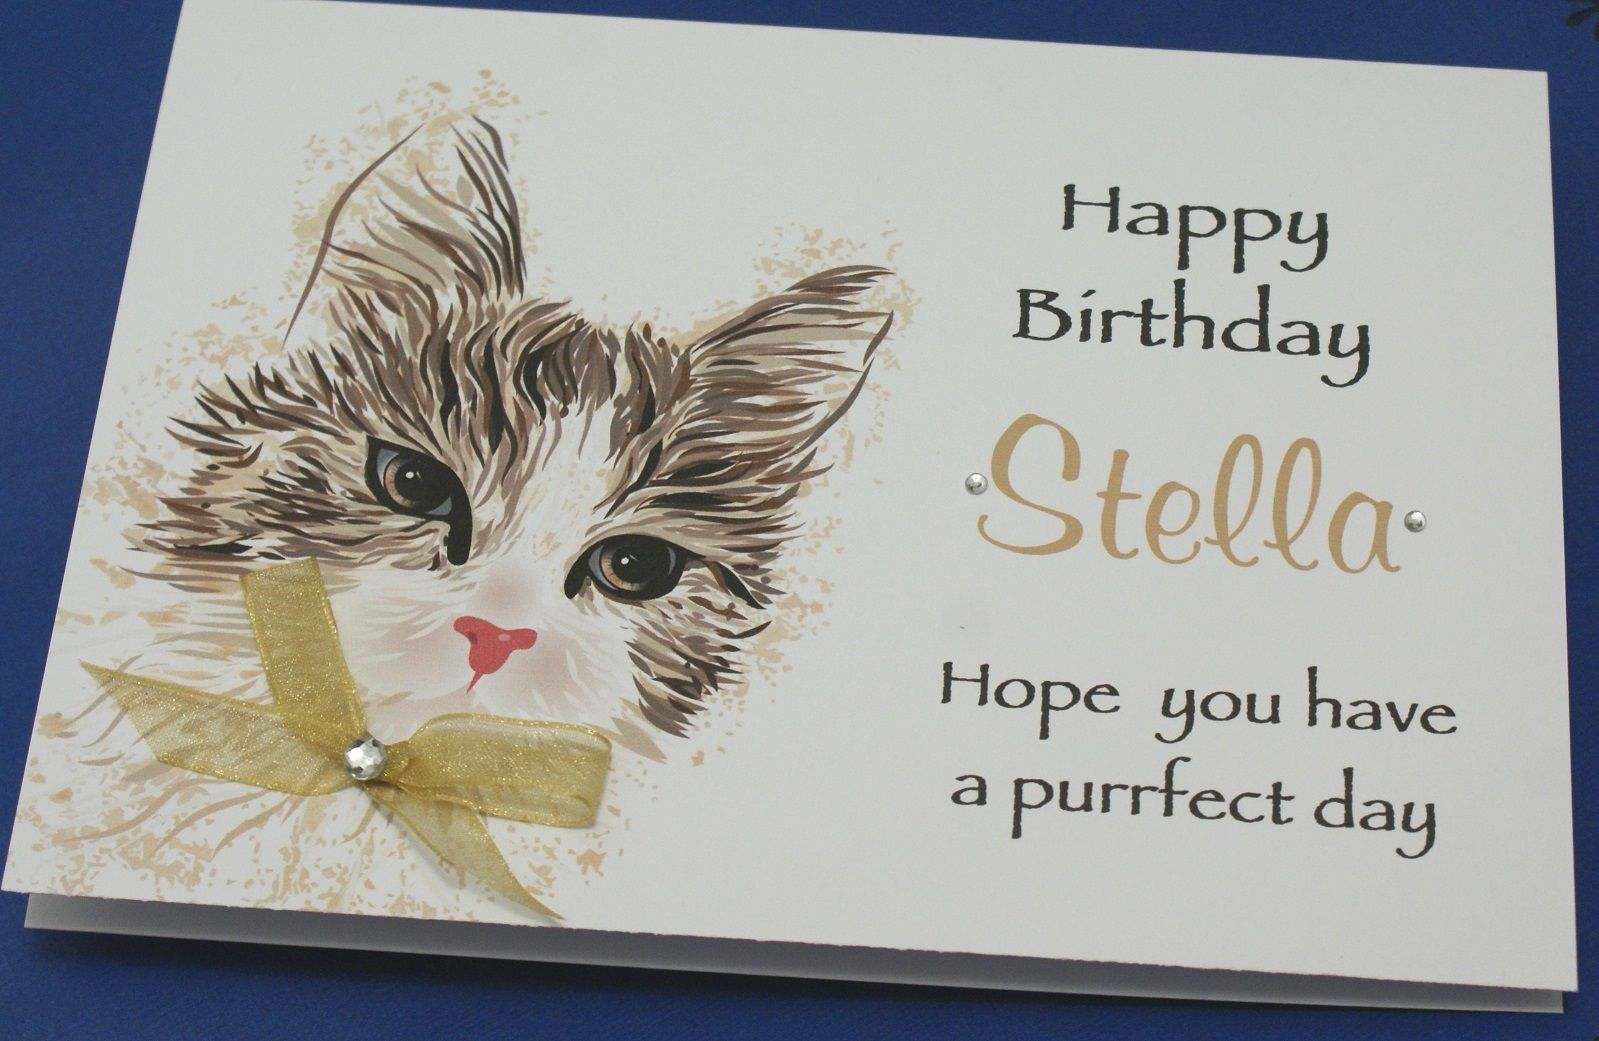 personalised photo birthday cards uk ; LARGE-Handmade-Personalised-Birthday-Card-CUTE-CAT-16th-21st-20th-30th-any-age_4